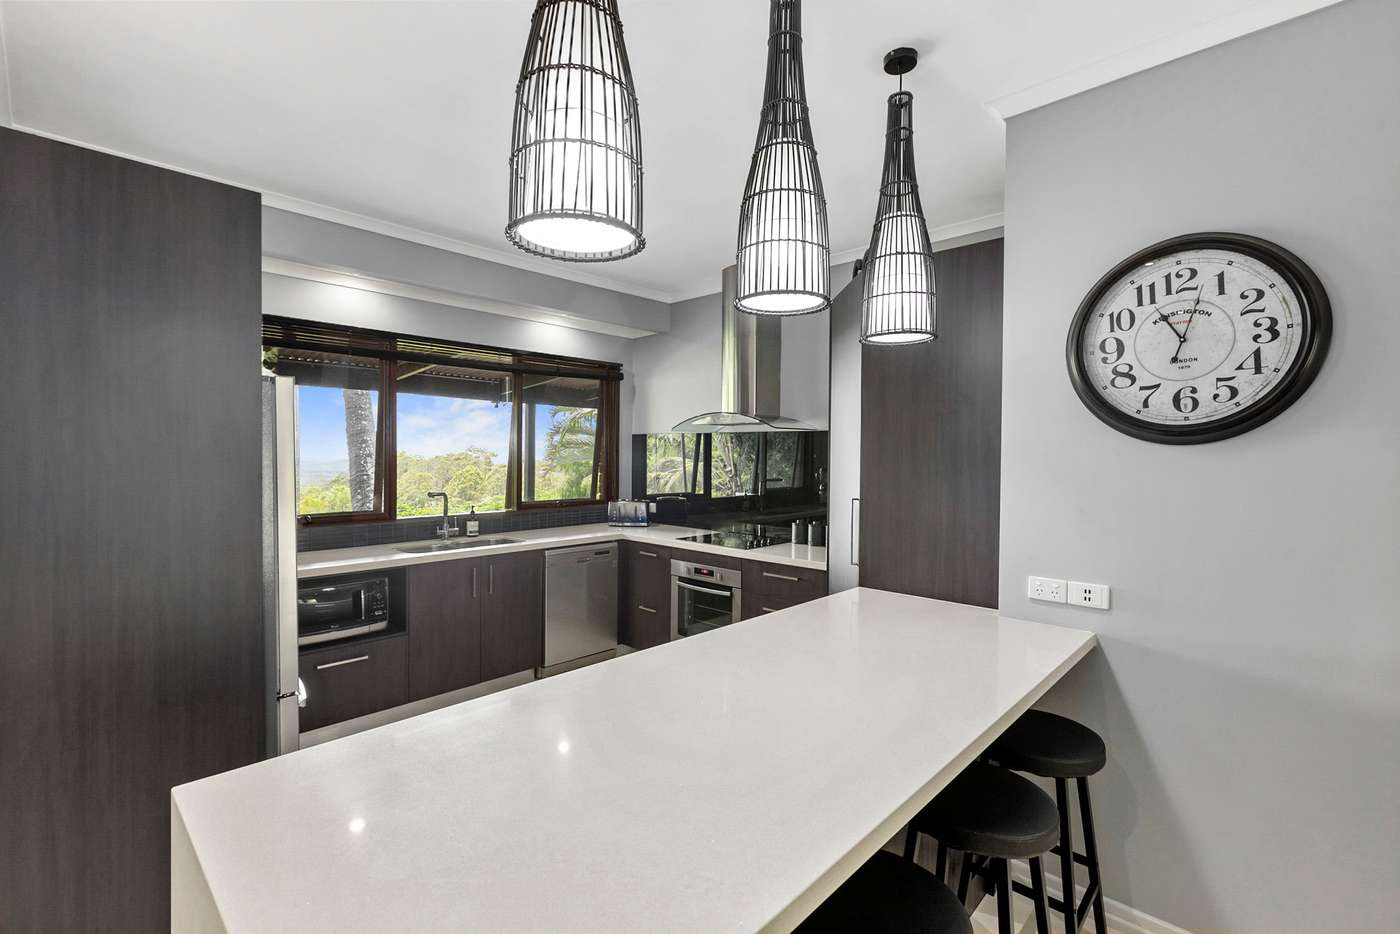 Sixth view of Homely house listing, 265 Lower Mount Mellum Road, Mount Mellum QLD 4550